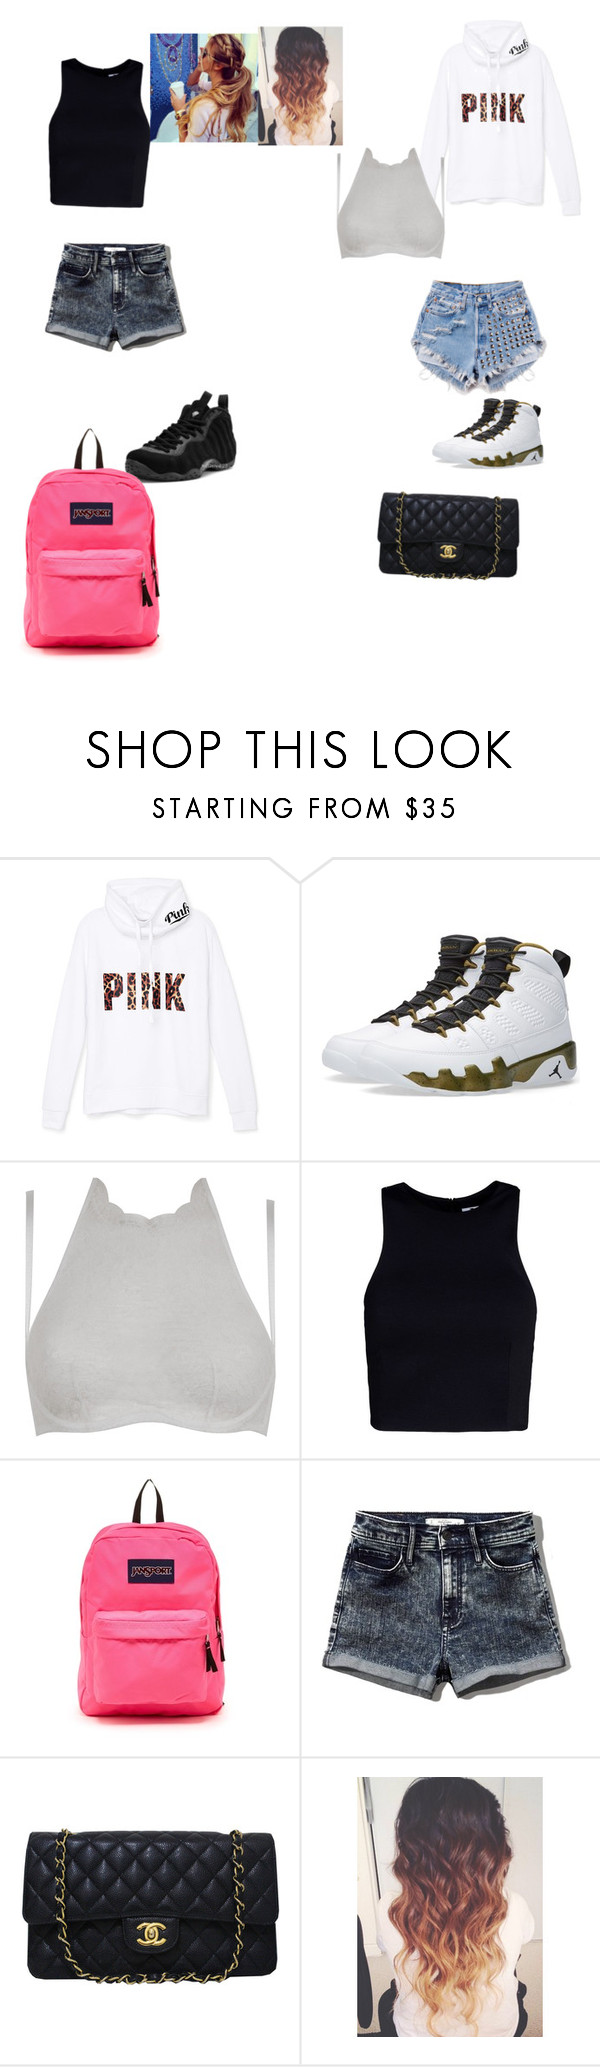 """""""Boring outfit"""" by yahiness ❤ liked on Polyvore featuring Victoria's Secret PINK, NIKE, Runwaydreamz, Agent Provocateur, T By Alexander Wang, JanSport, Abercrombie & Fitch and Chanel"""